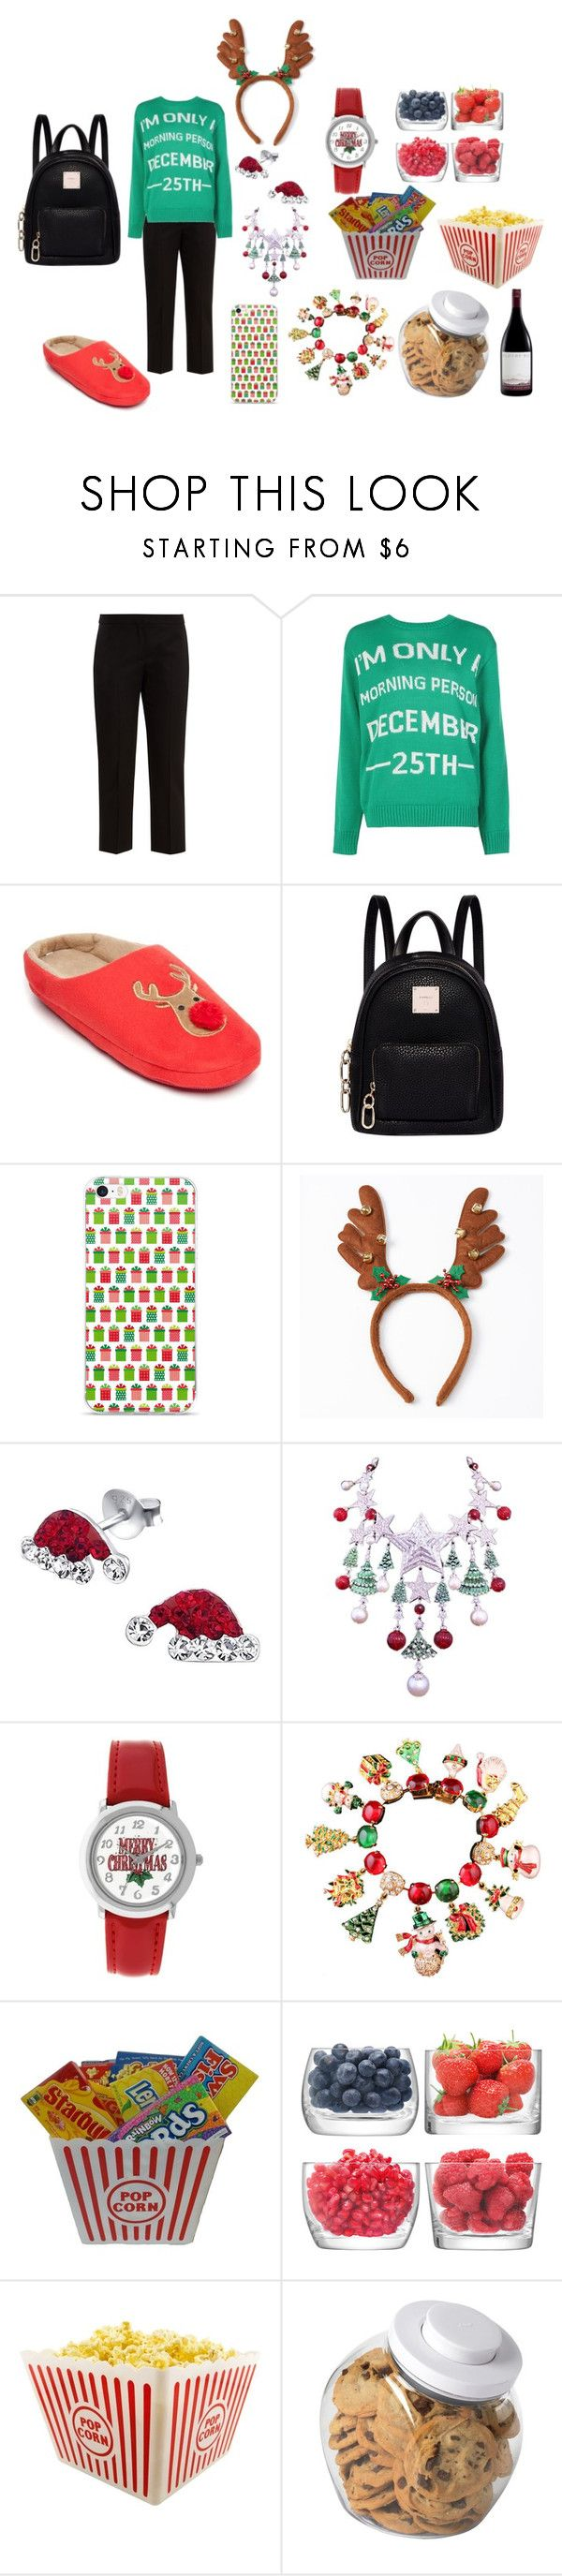 """""""Christmas Sleepover Party Outfit"""" by queencotton21 on Polyvore featuring Alexander McQueen, Boohoo, New Directions, Fiorelli, Carlo Zini, Kim Rogers, LSA International and OXO"""